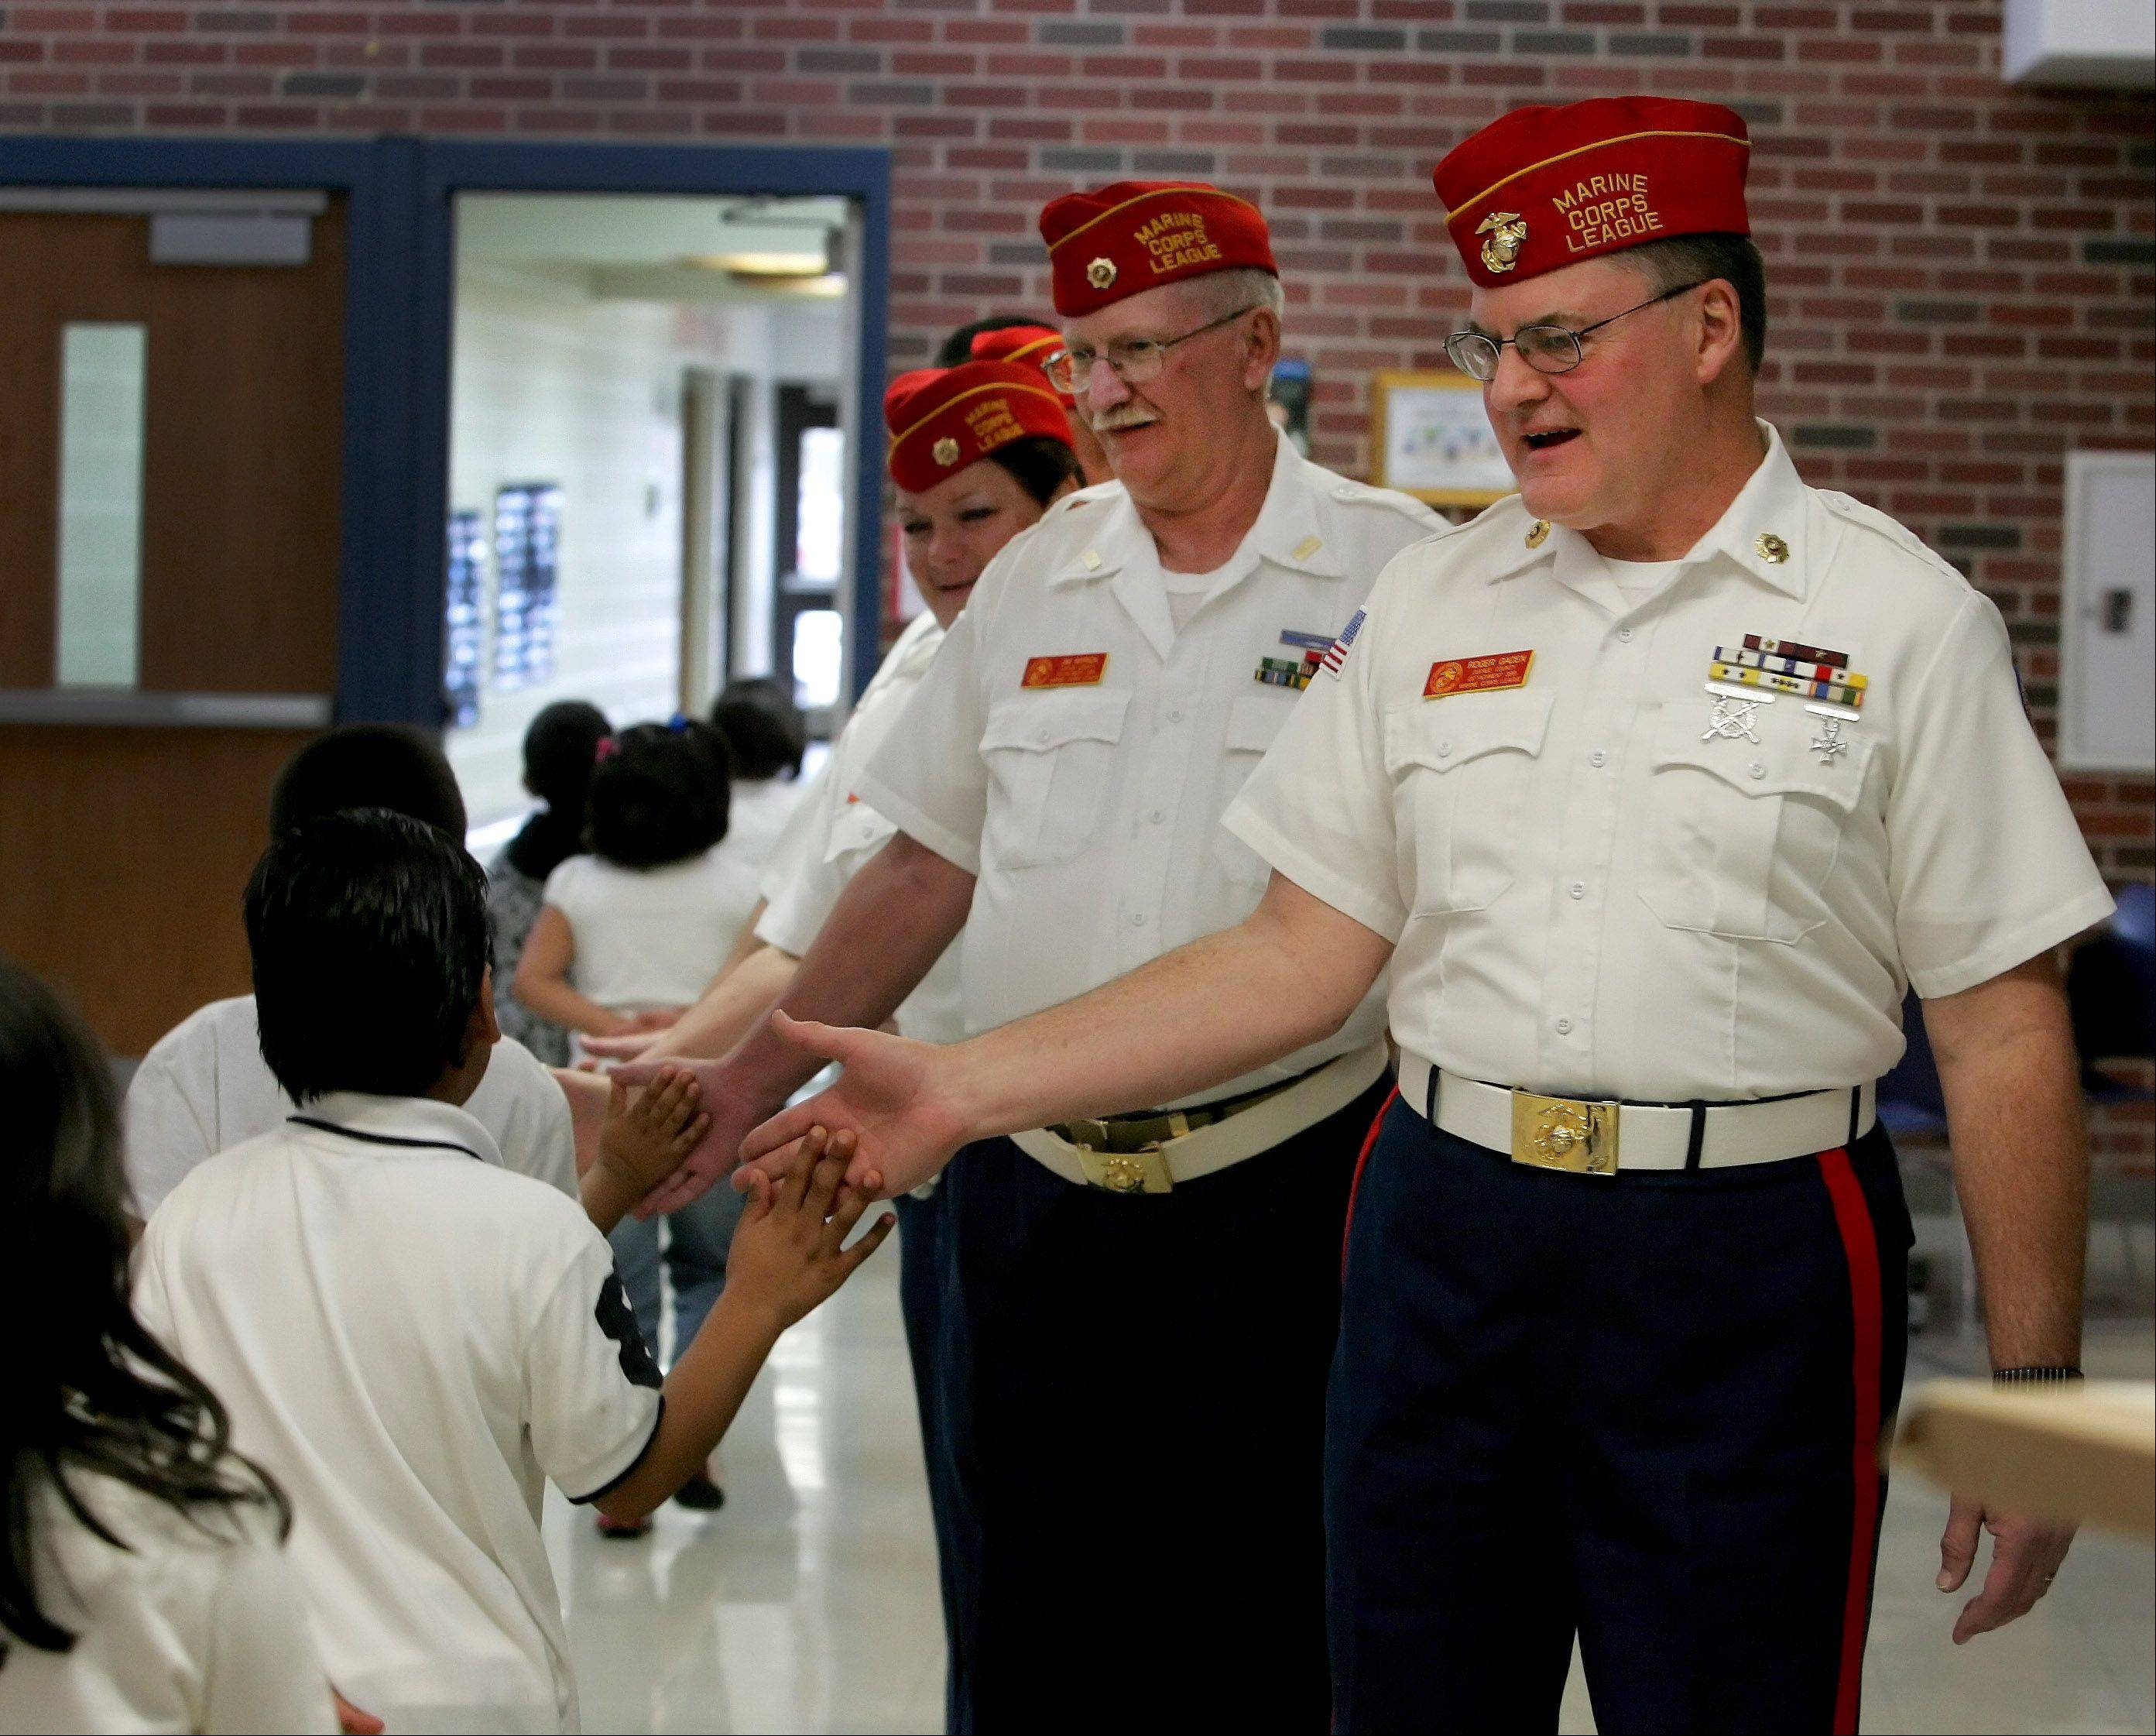 Jim Myrick, left, and Roger Gaden, members of the DuPage County Marines, Detachment 399, greet students as they head in for a Veterans Day program at Johnson Elementary School in Warrenville.